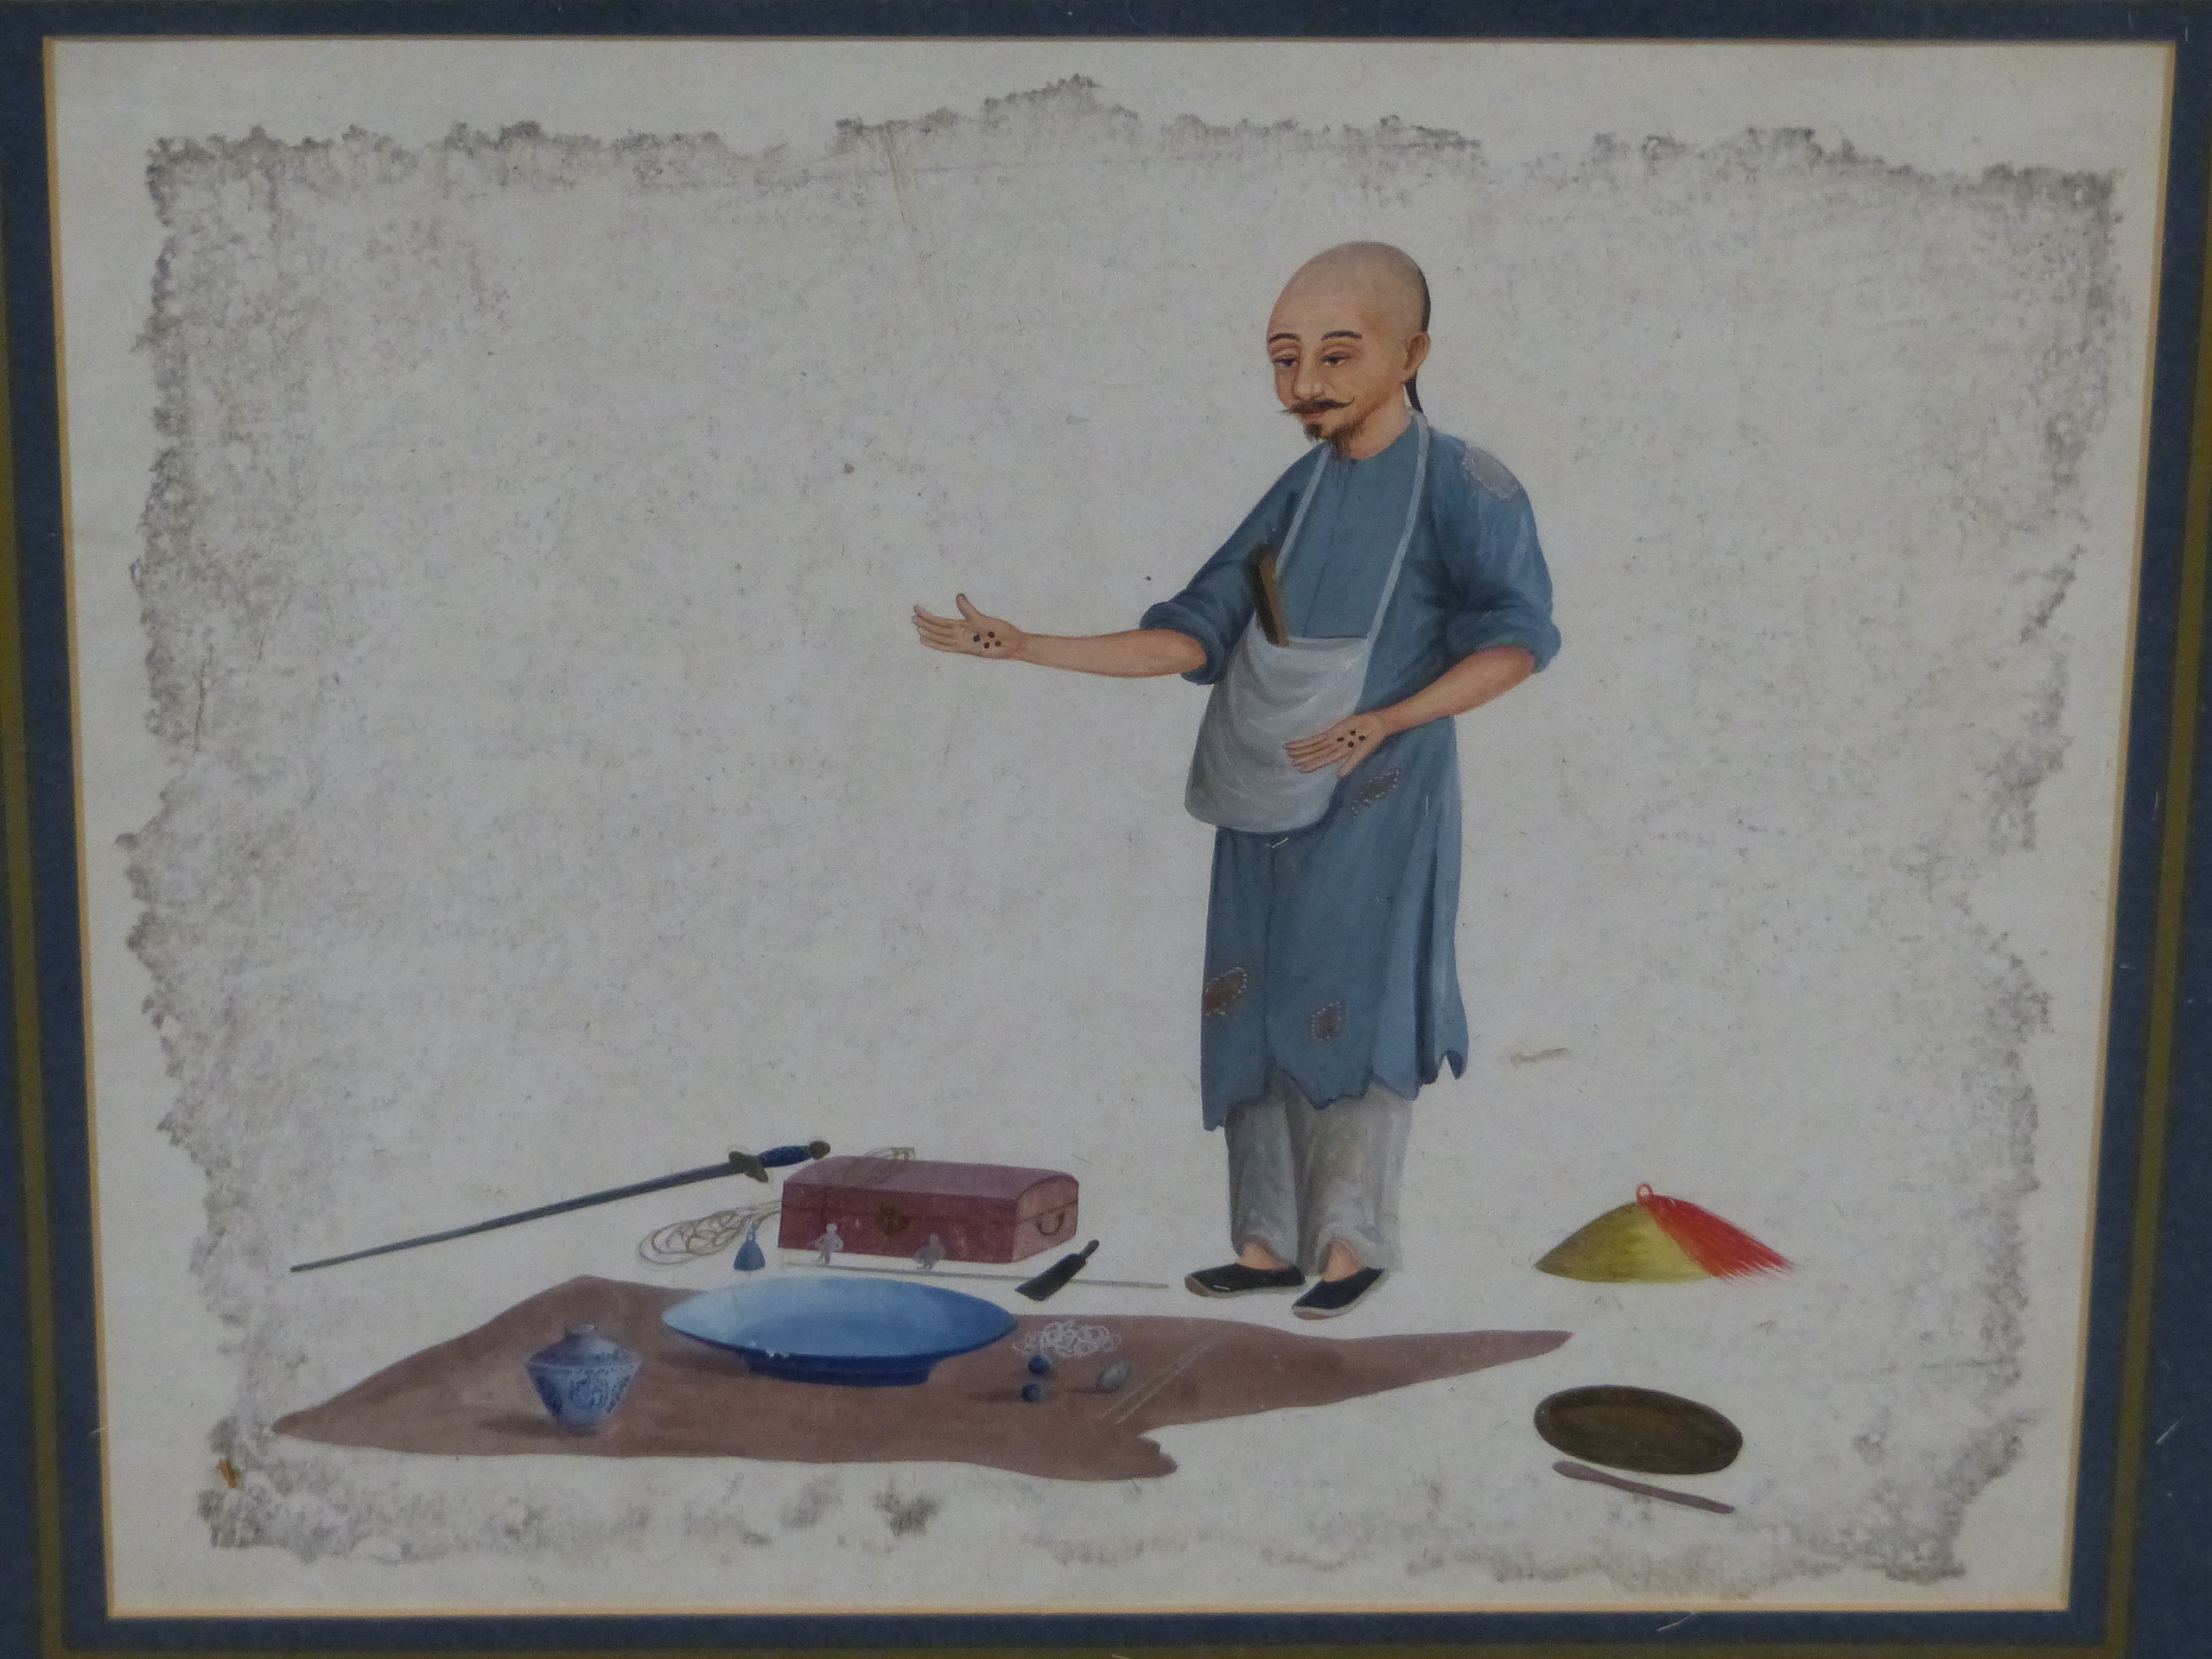 TWO GILT FRAMED CHINESE WATERCOLOURS, ONE OF A MAN SEATED AT A TABLE WRITING, THE OTHER OF A MAN